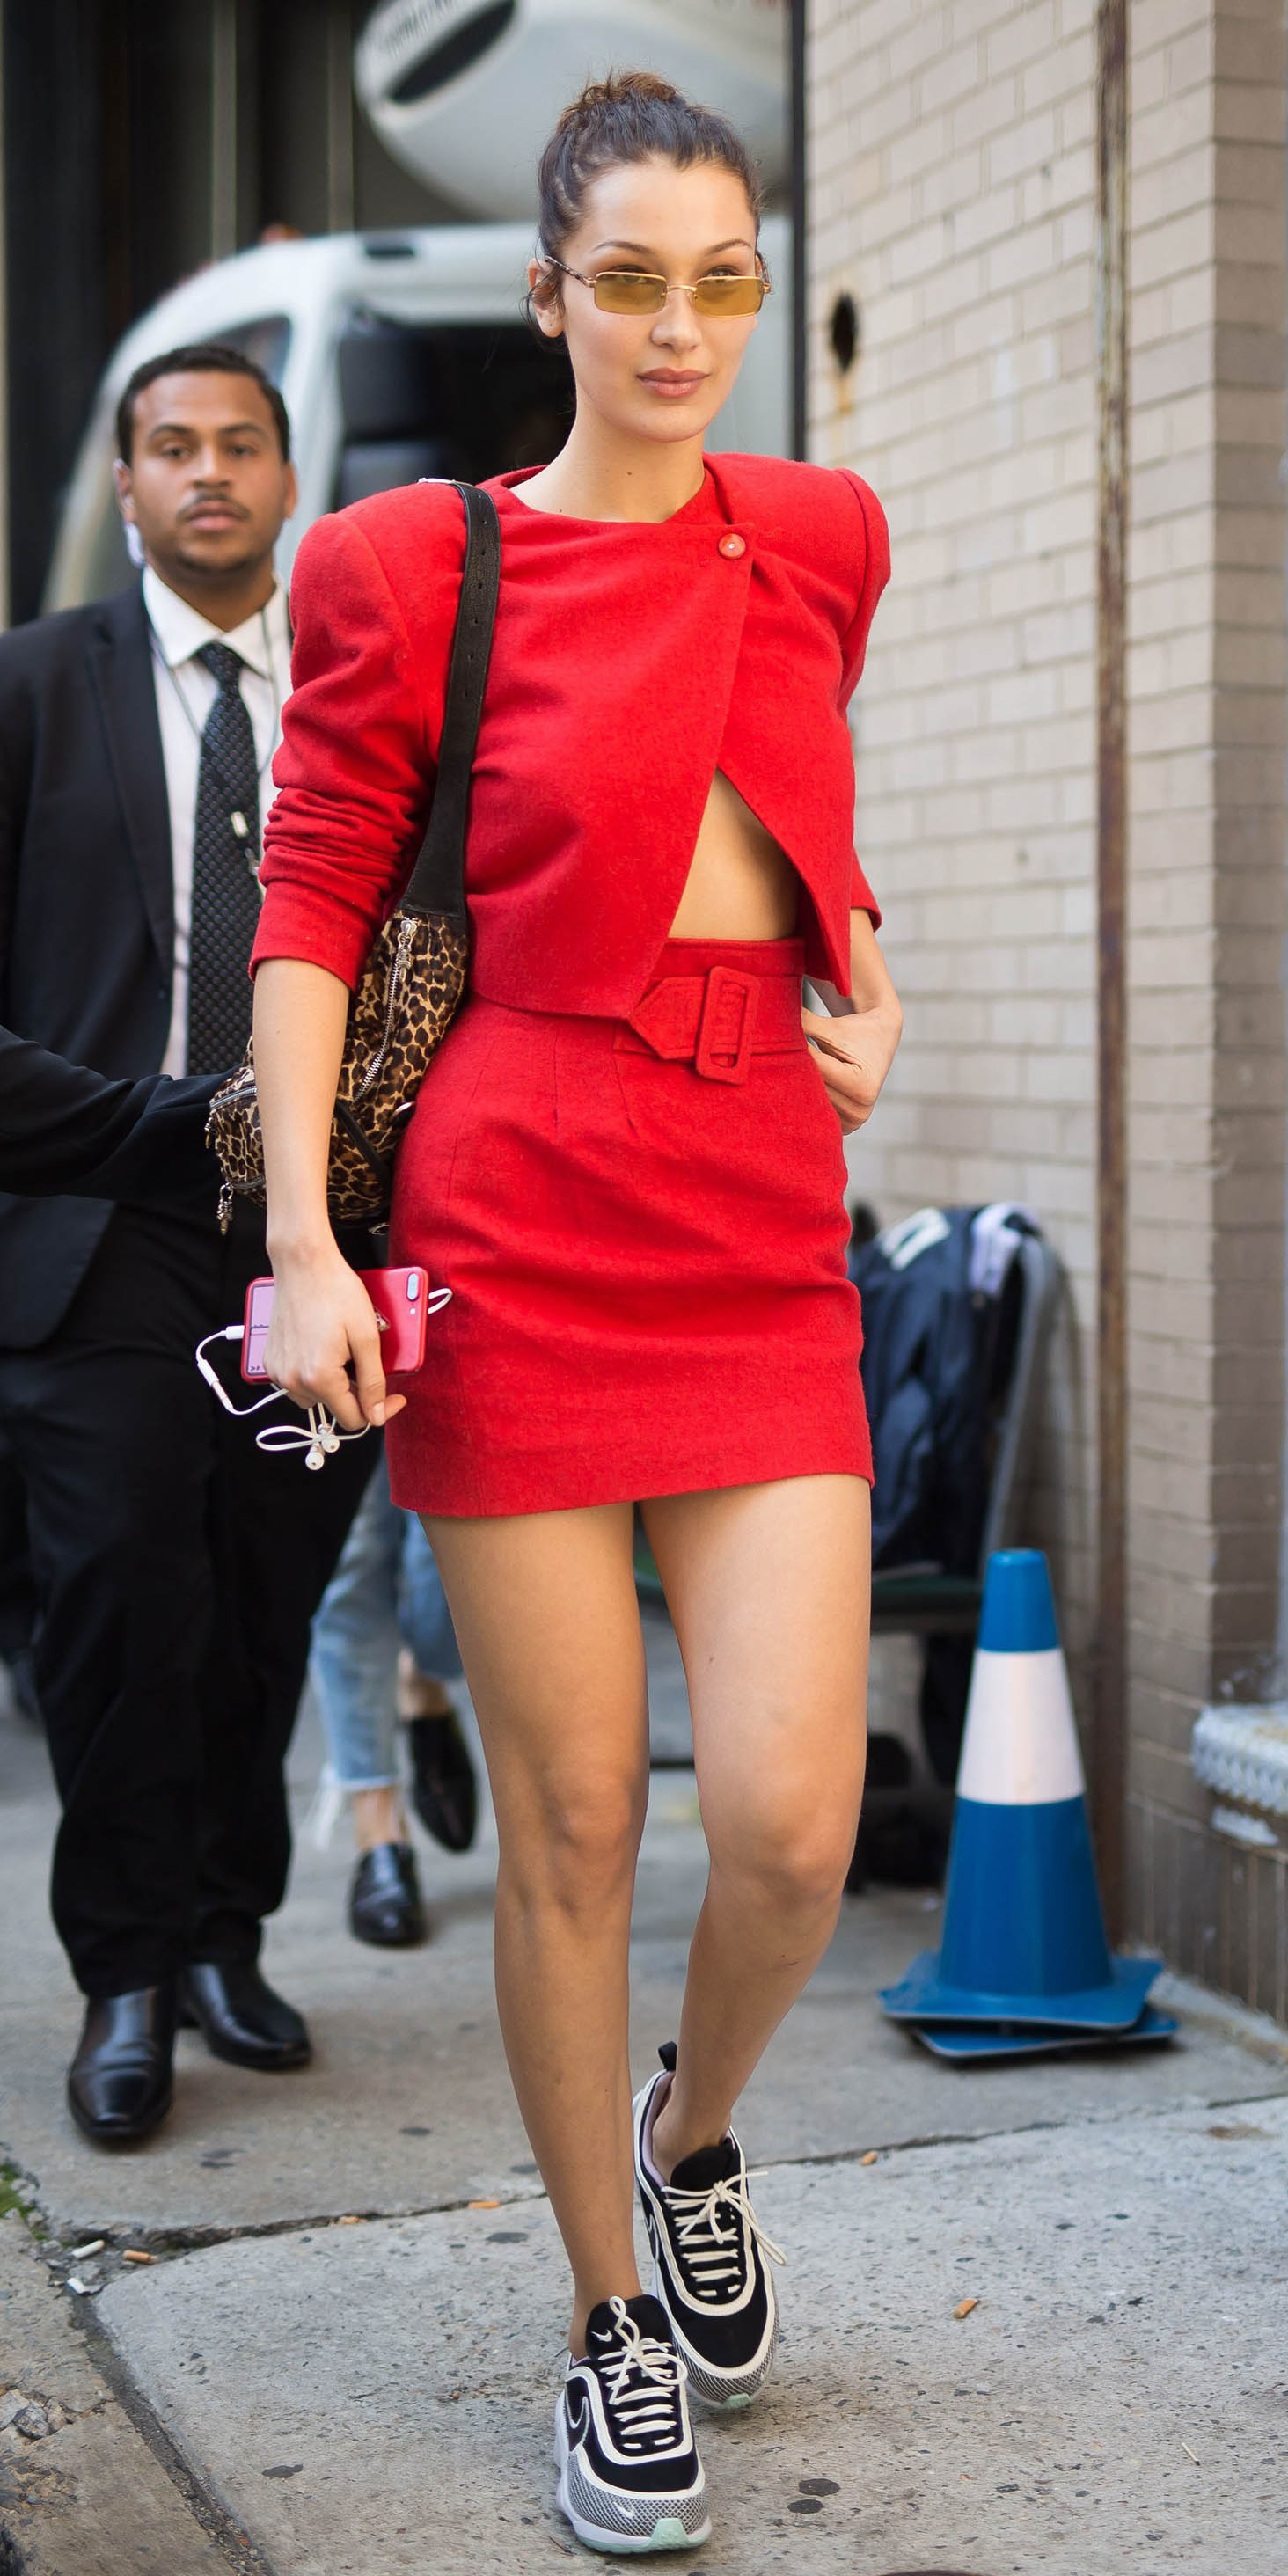 how-to-style-red-mini-skirt-bellahadid-match-set-hairr-pony-leopard-print-black-shoe-sneakers-fall-winter-fashion-streetstyle-sun-weekend.jpg